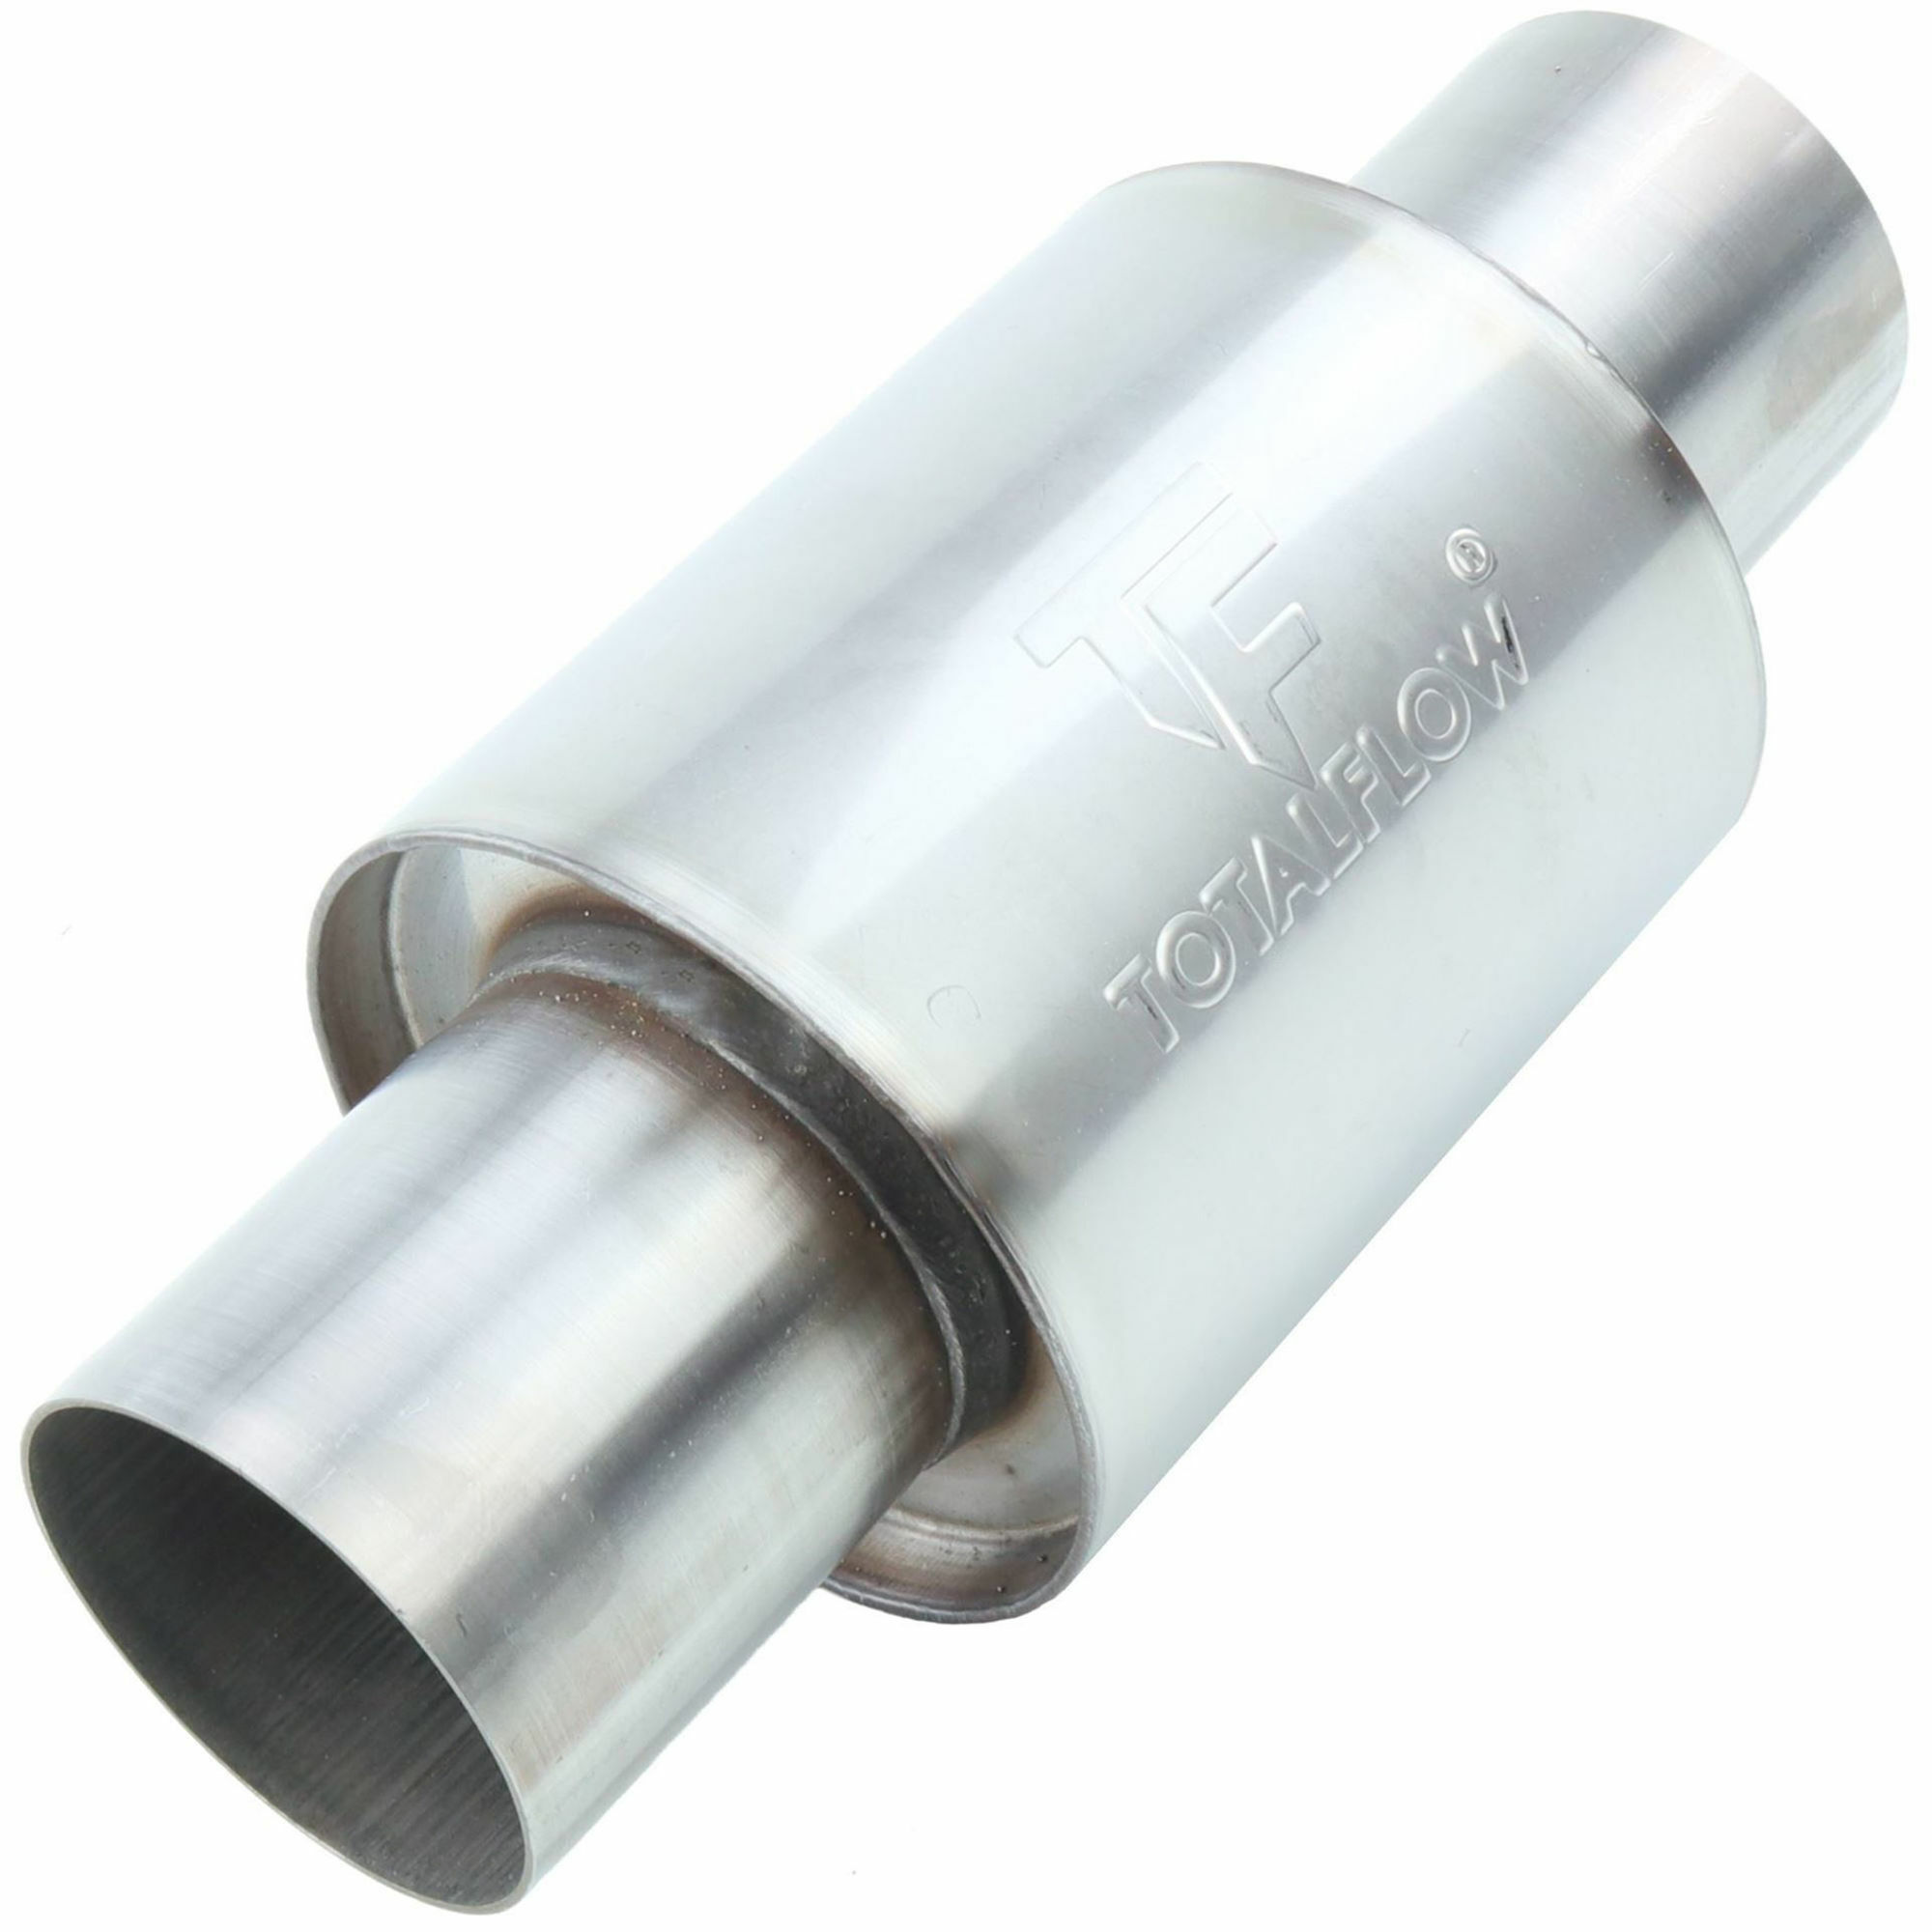 Picture of TOTALFLOW 22314 Straight Through Universal Exhaust Muffler - 2 Inch ID